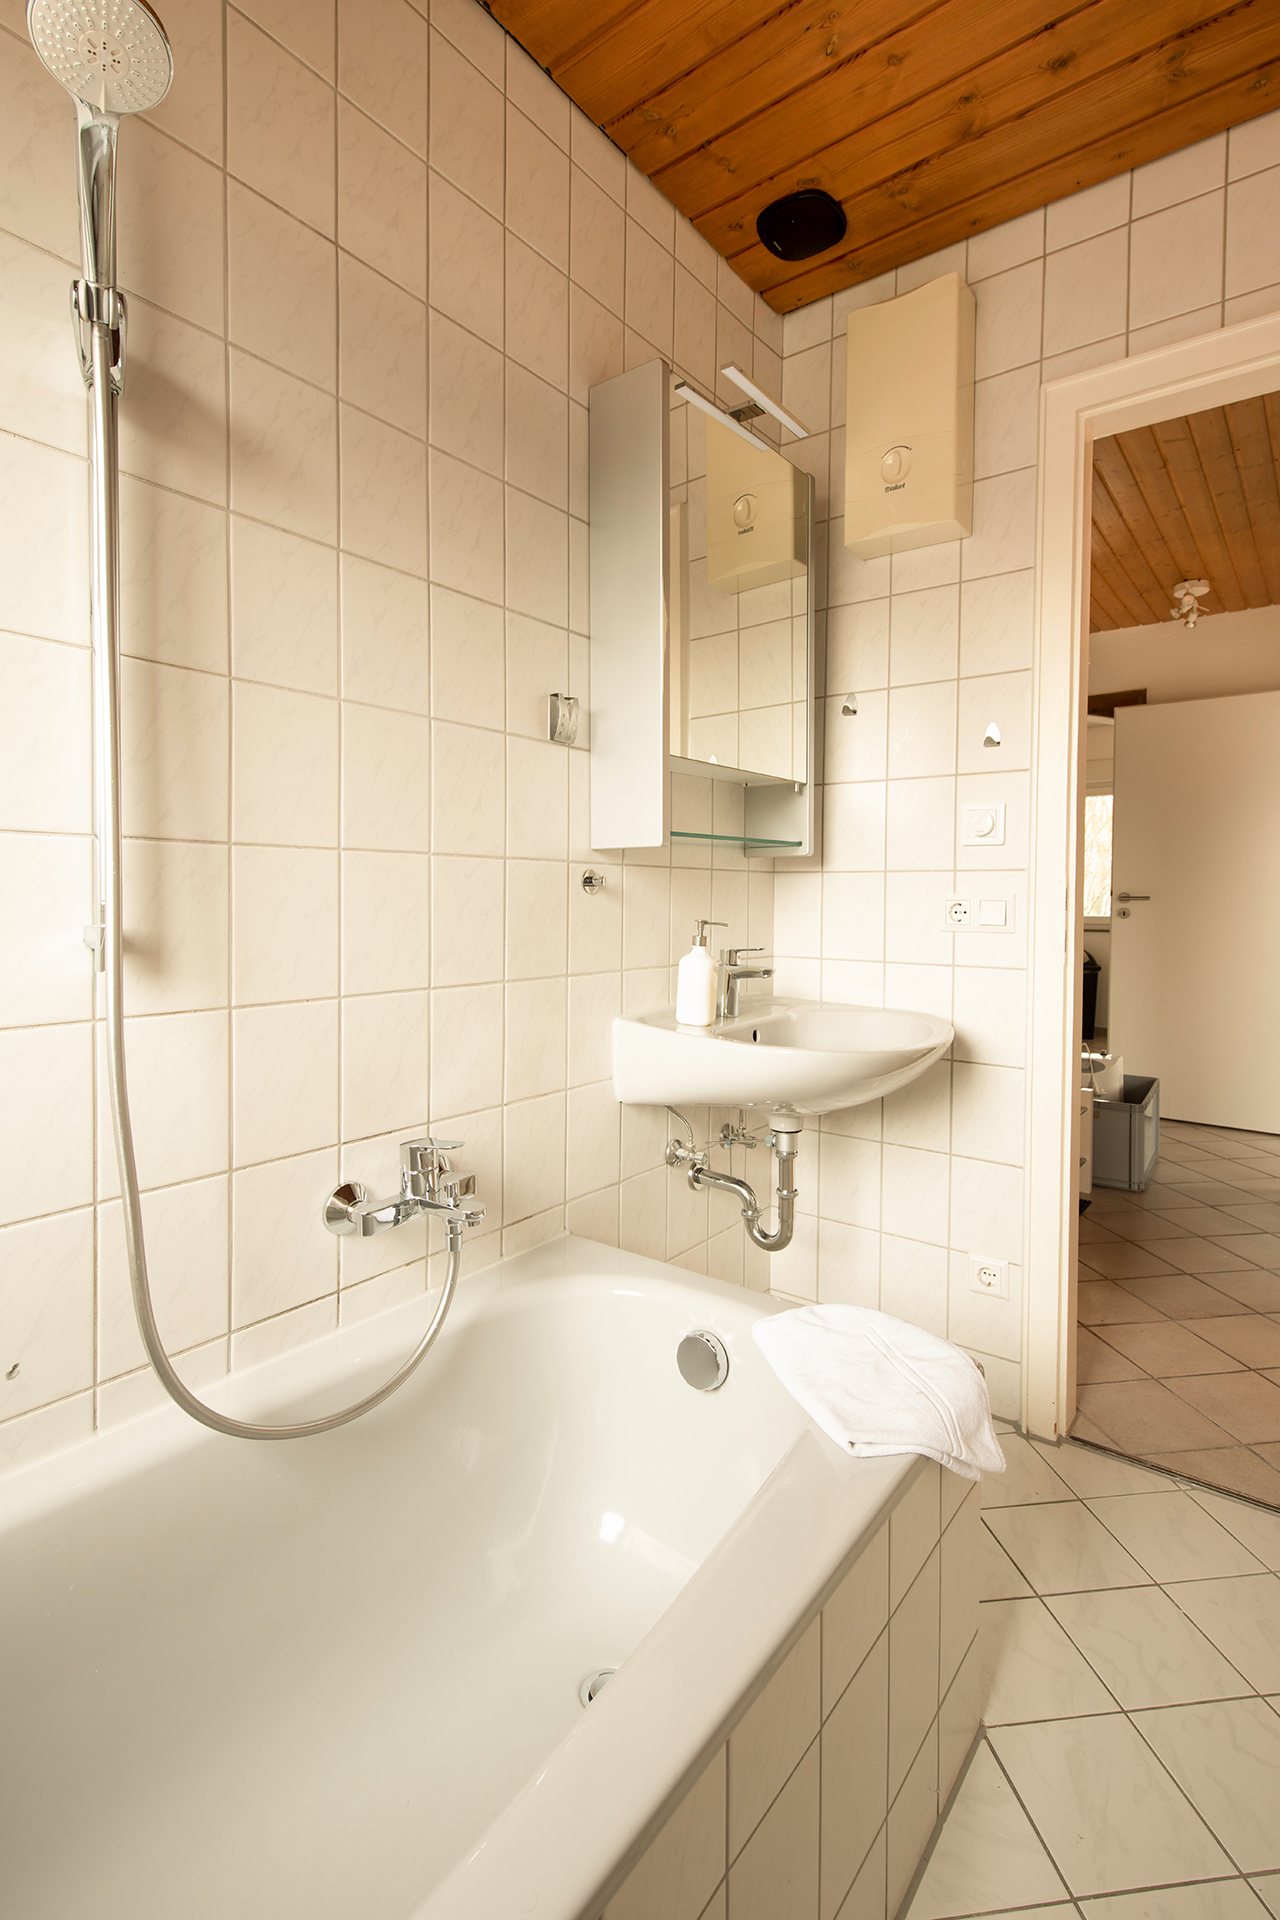 Holiday apartments on Lake Constance: Friedrichshafen - Bathroom